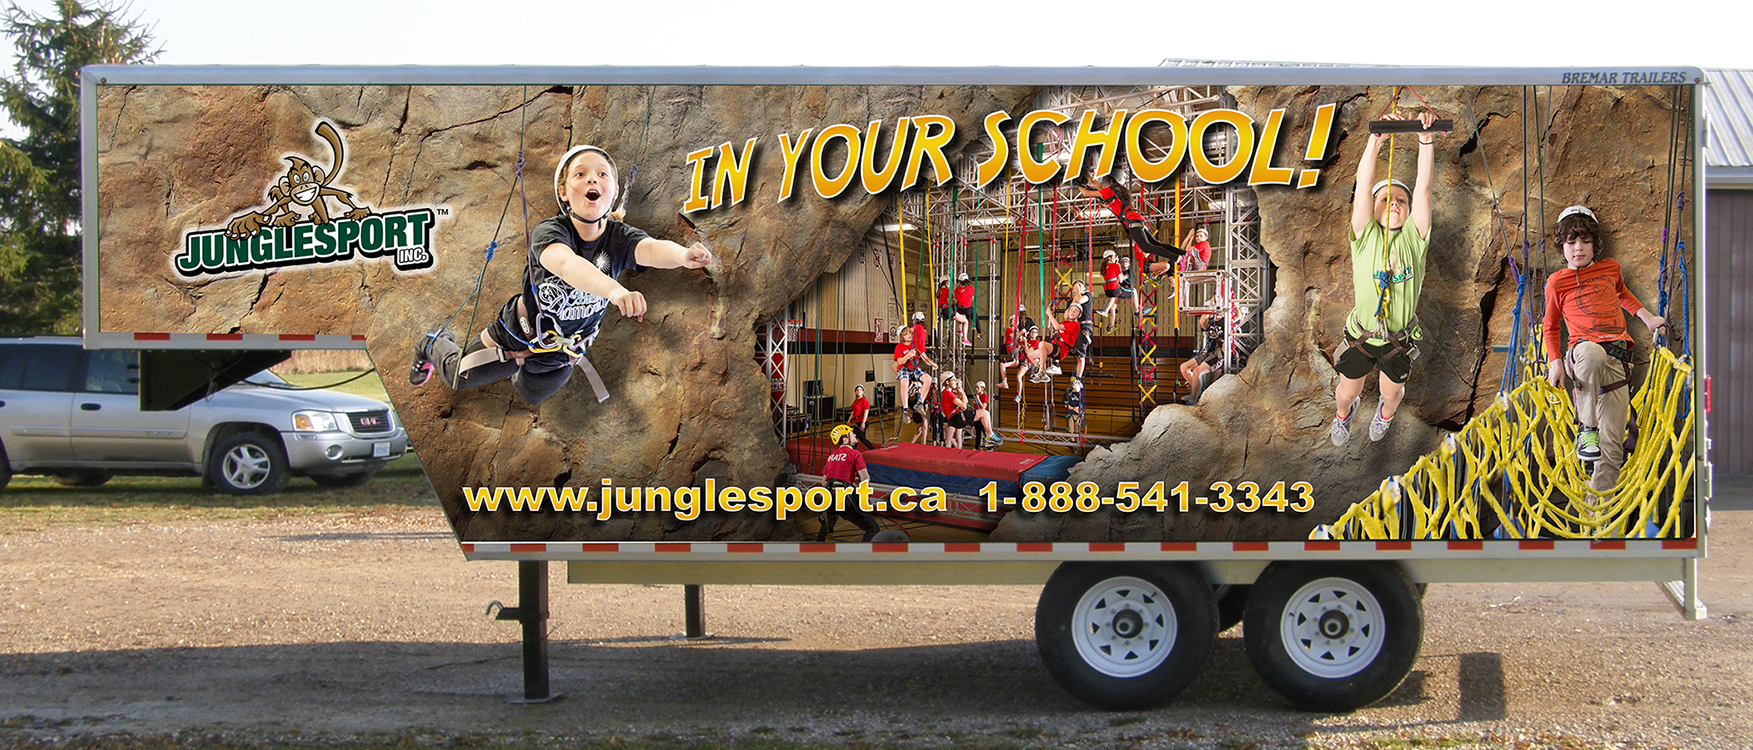 Junglesport Trailer Wrap Design